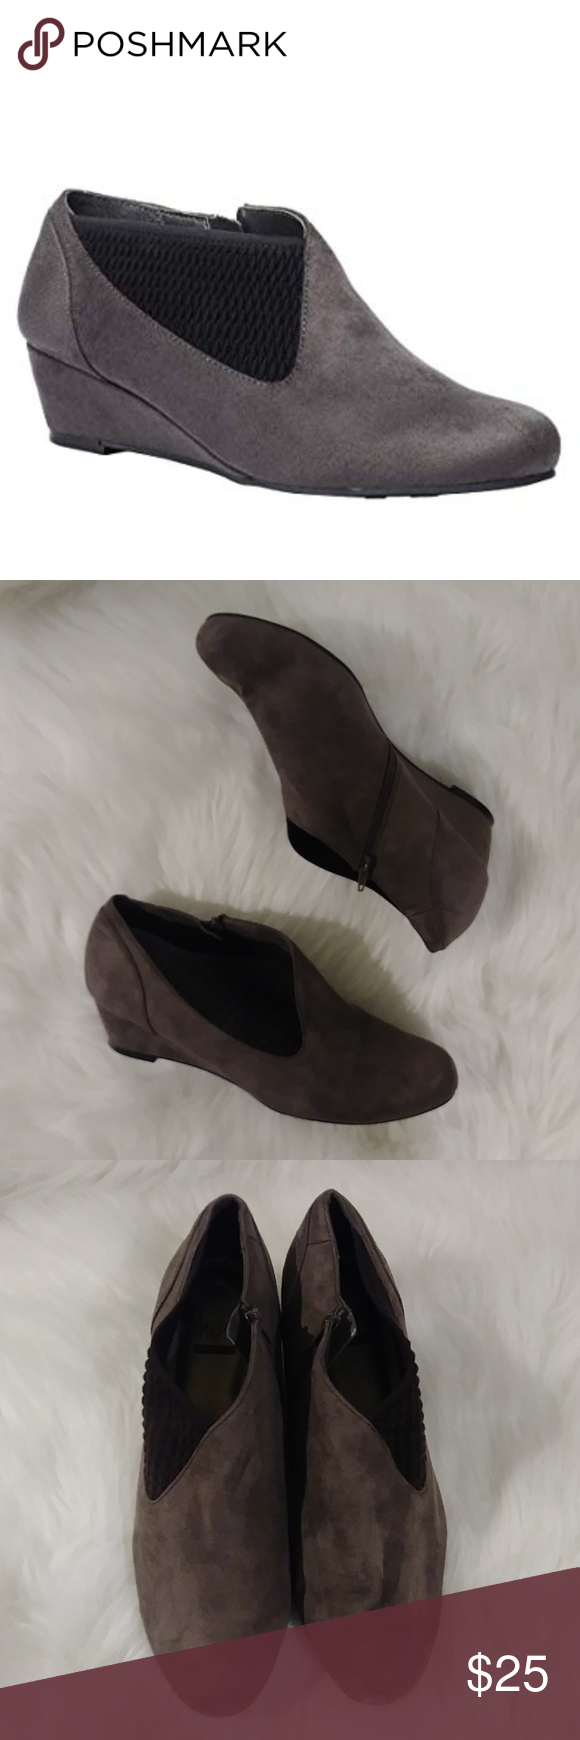 03496c528877  464 Impo Gabriella Stretch Dress Wedge Booties Wedge Ankle booties Machine  washable Shoes